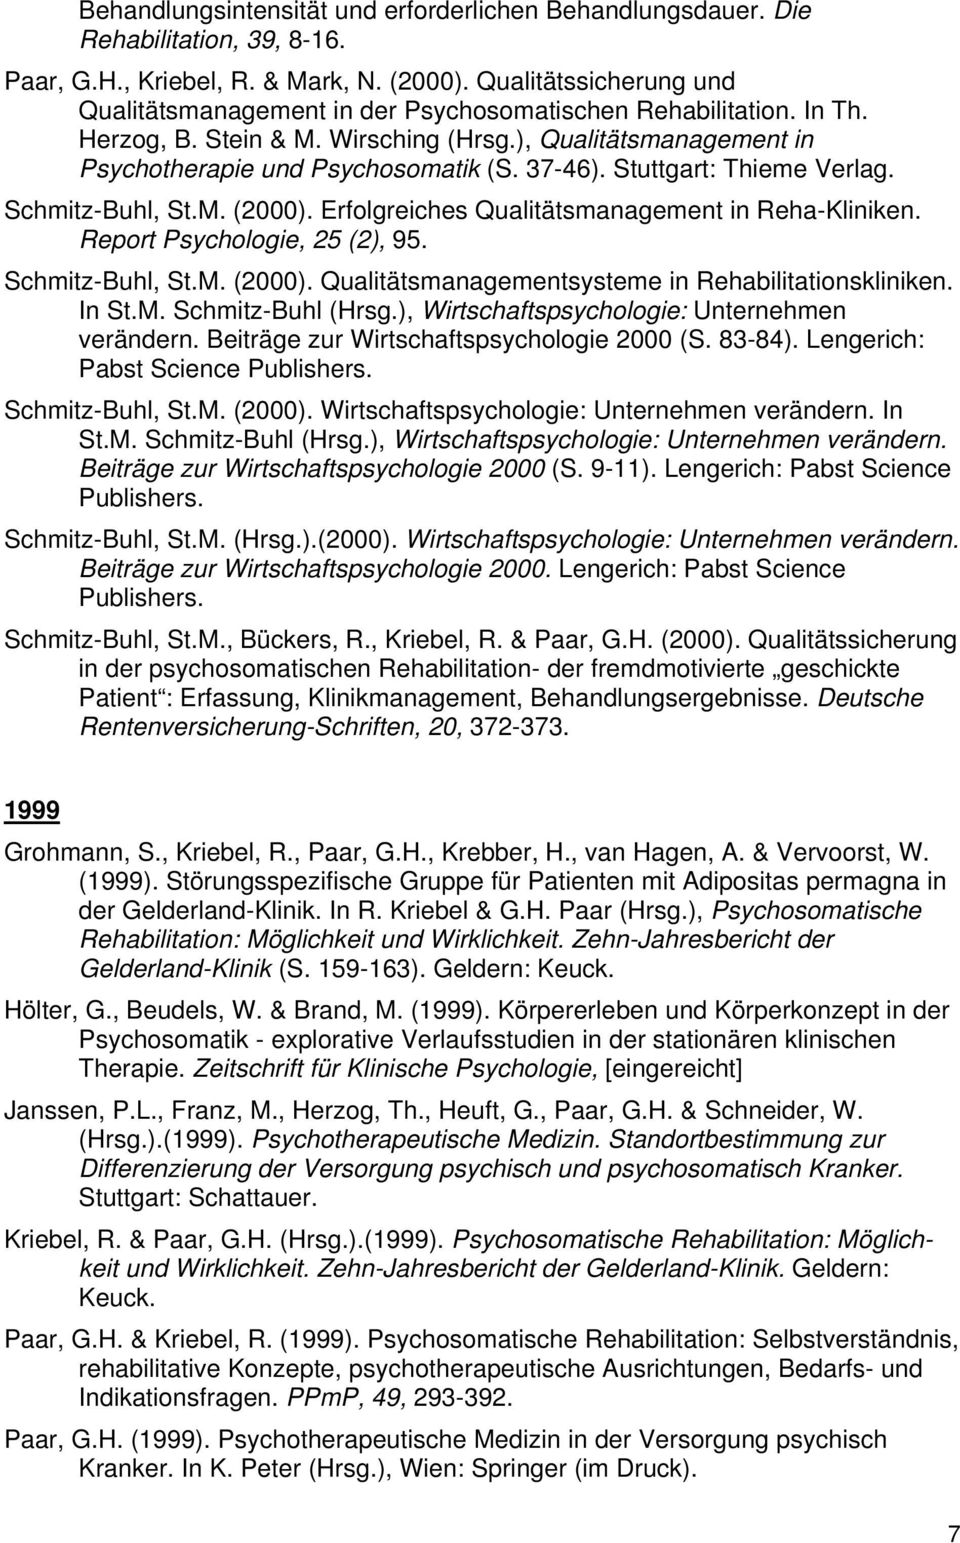 Stuttgart: Thieme Verlag. Schmitz-Buhl, St.M. (2000). Erfolgreiches Qualitätsmanagement in Reha-Kliniken. Report Psychologie, 25 (2), 95. Schmitz-Buhl, St.M. (2000). Qualitätsmanagementsysteme in Rehabilitationskliniken.